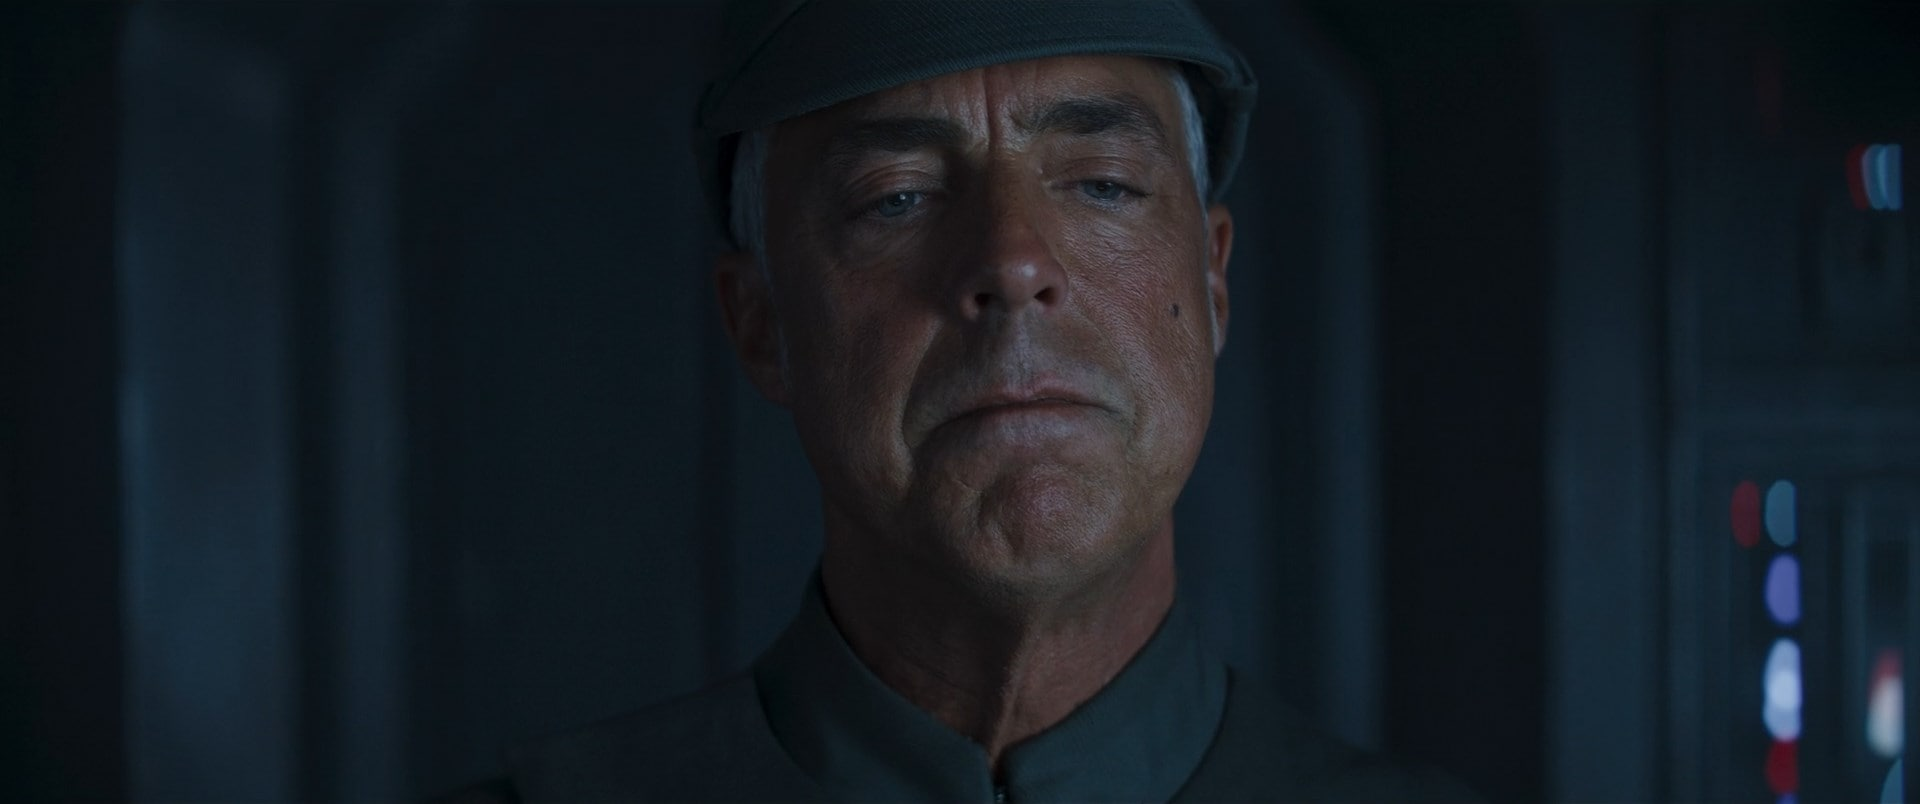 mandalorian season 2 episode 3 titus welliver mandalorian season 2 episode 3